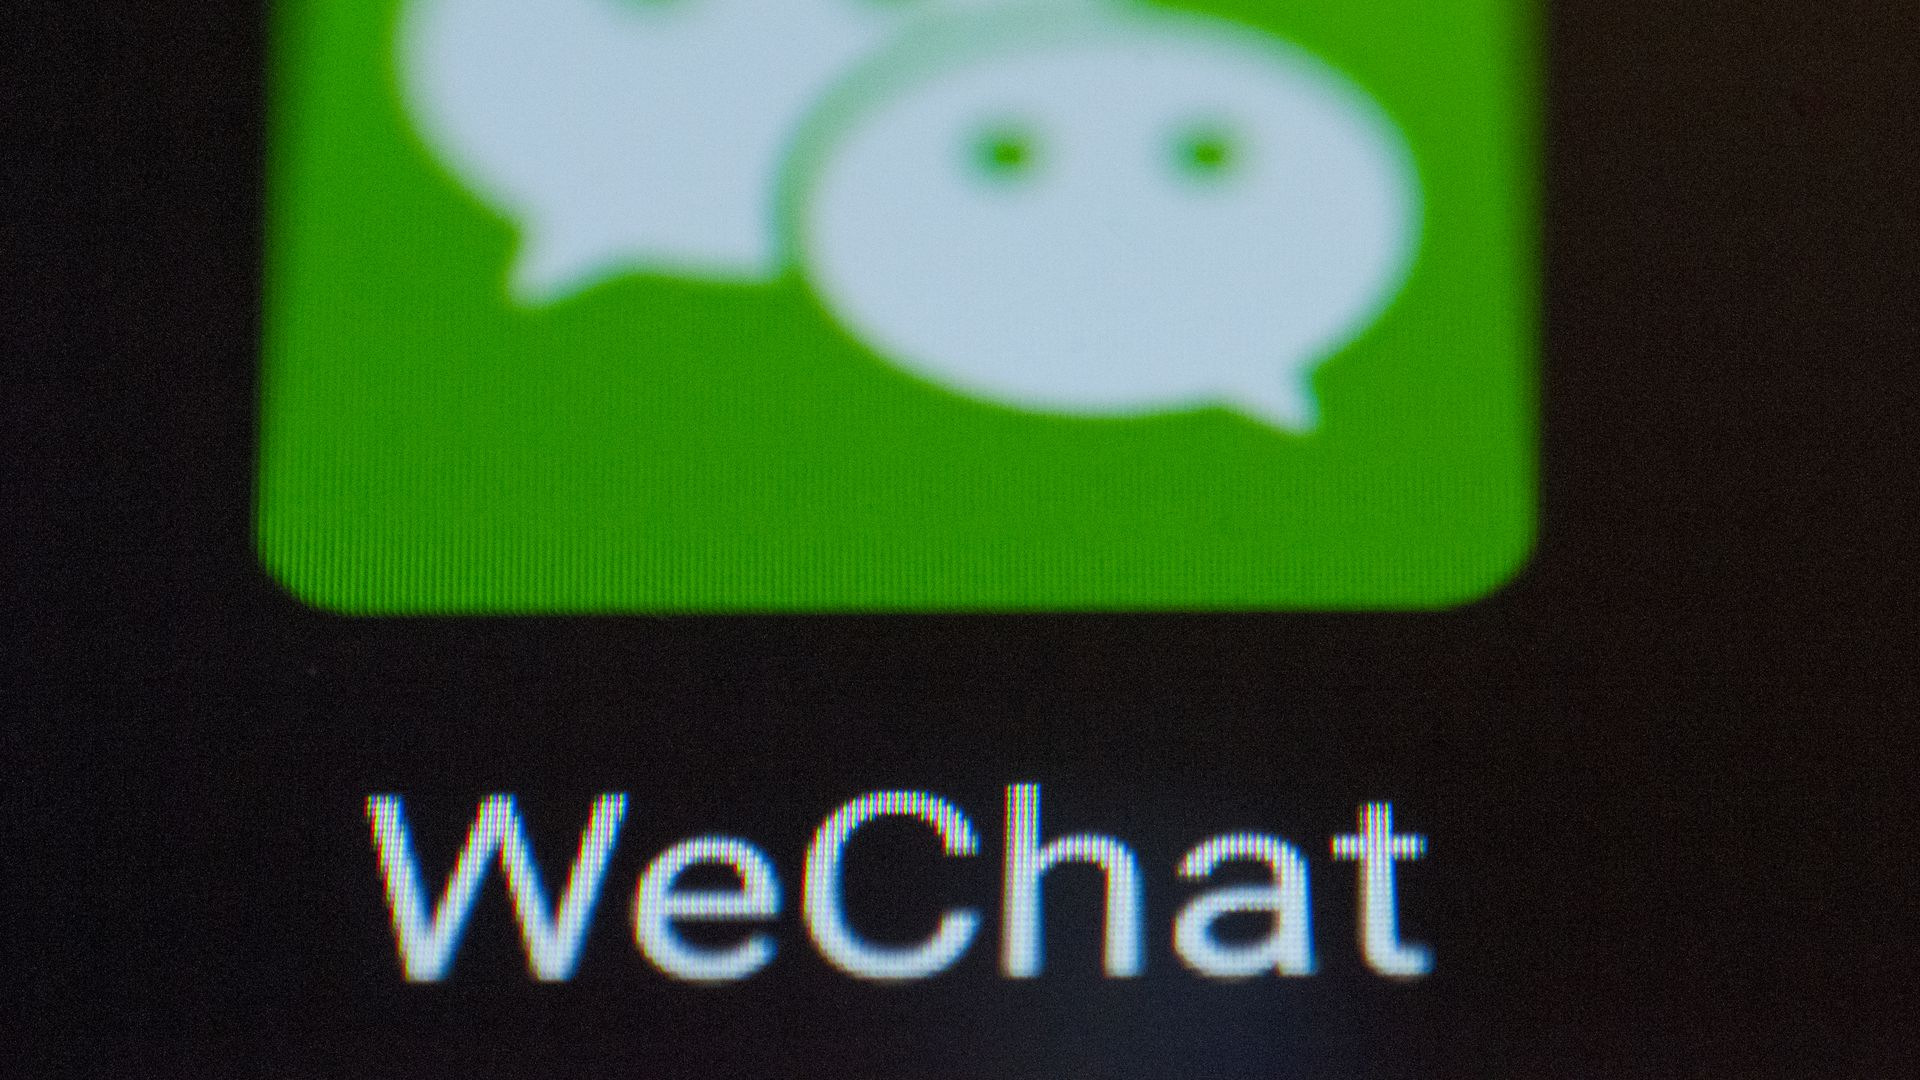 WeChat app icon